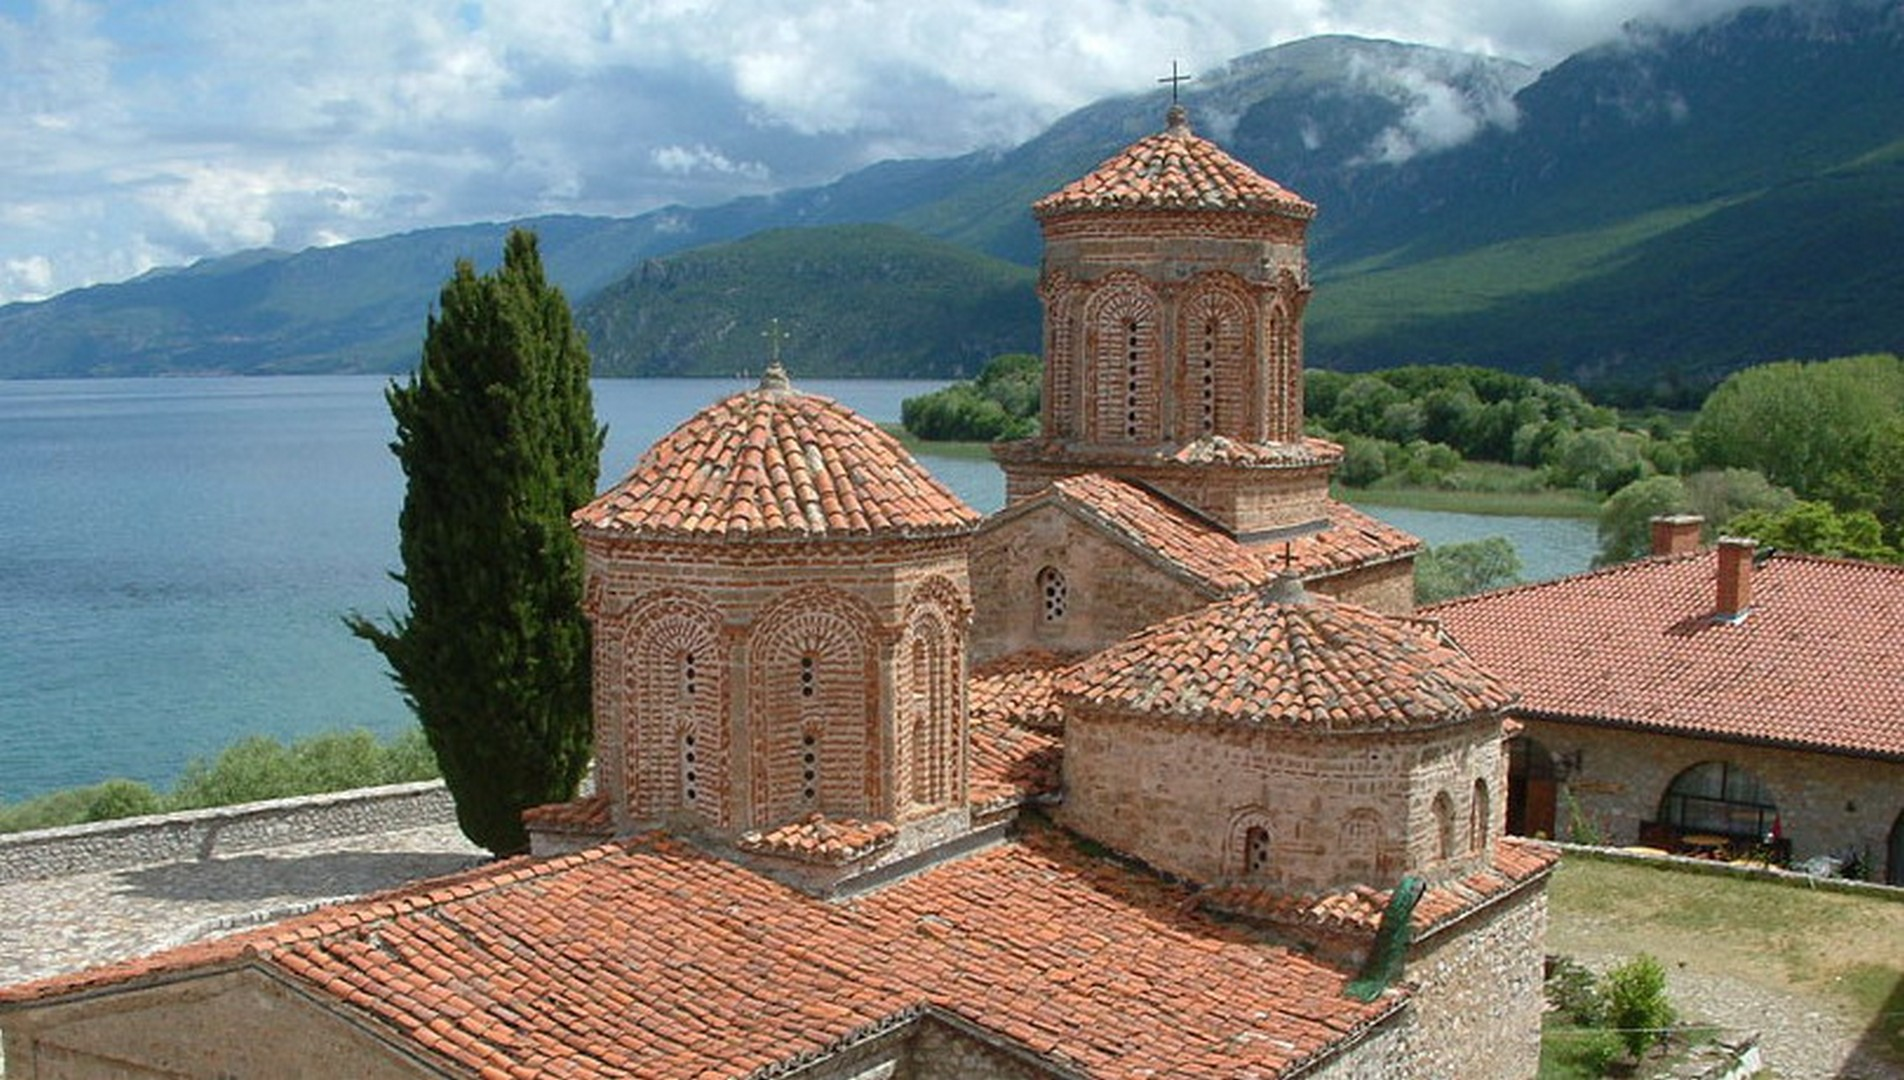 ZDRAVO MACEDONIA!  MONASTERIES, MOSQUES AND VINEYARDS in pictures, May 2016  PART 1